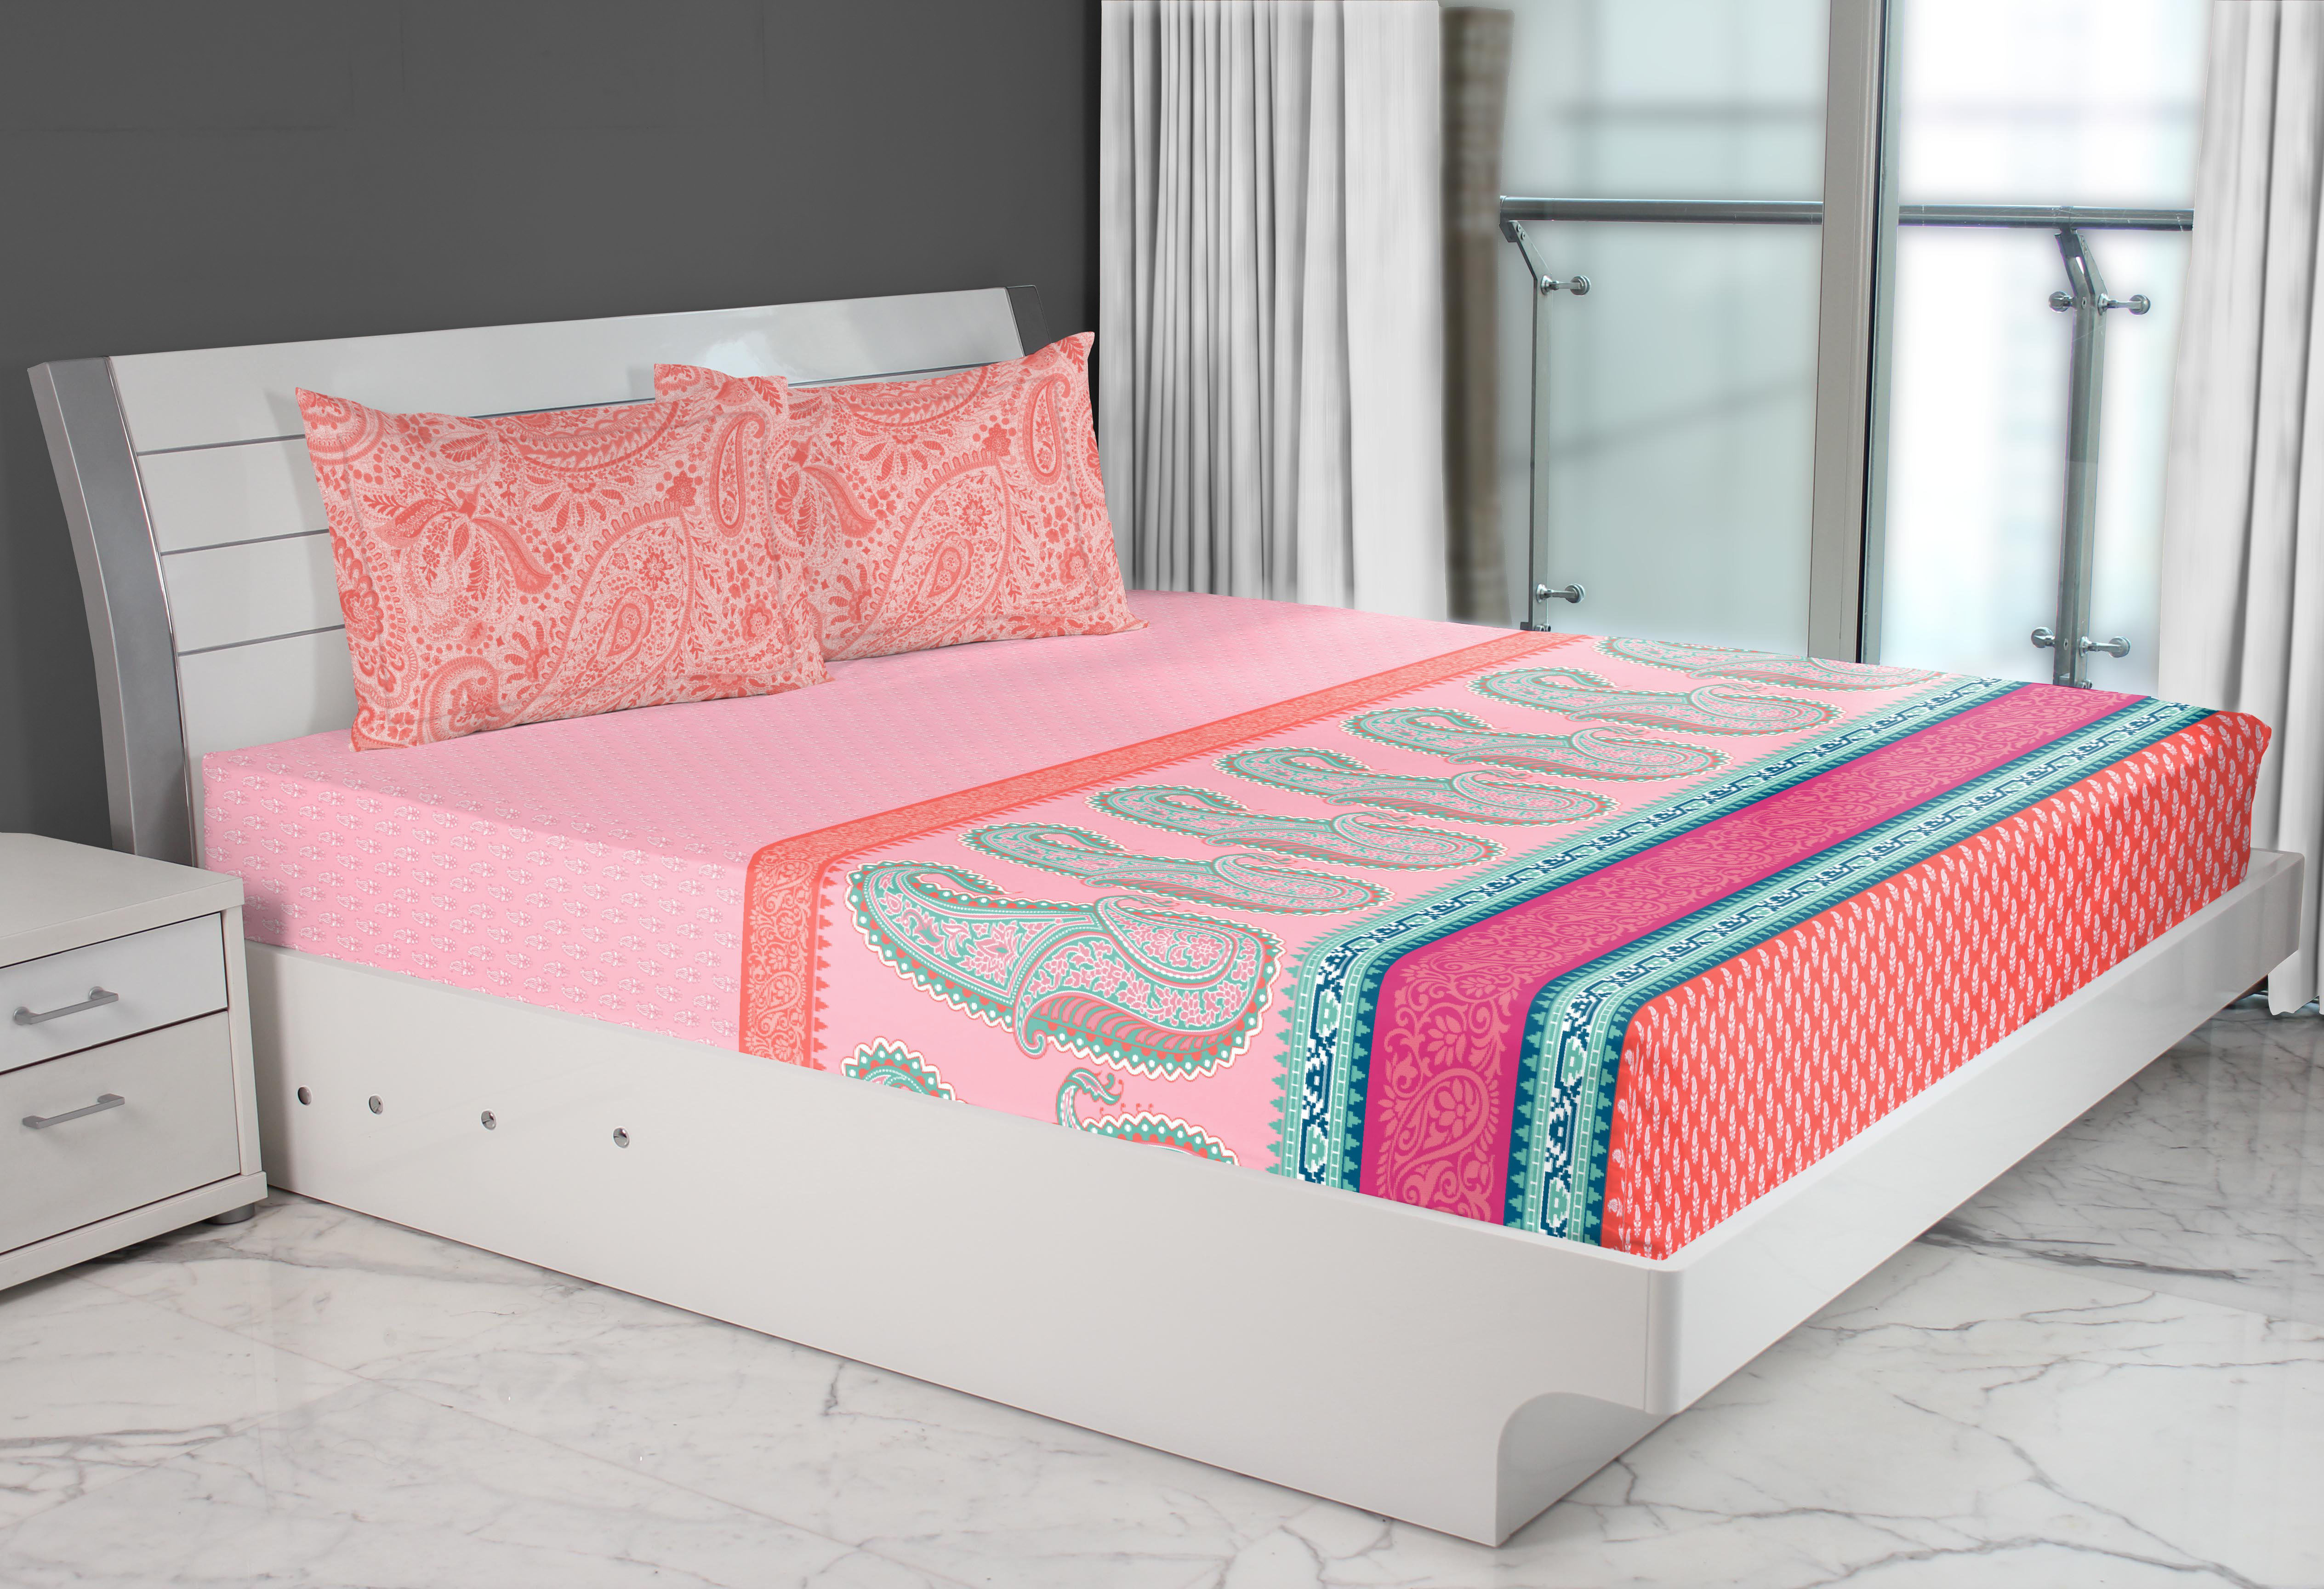 Emilia Cotton Double Bed Sheets in Rose Colour by Living Essence